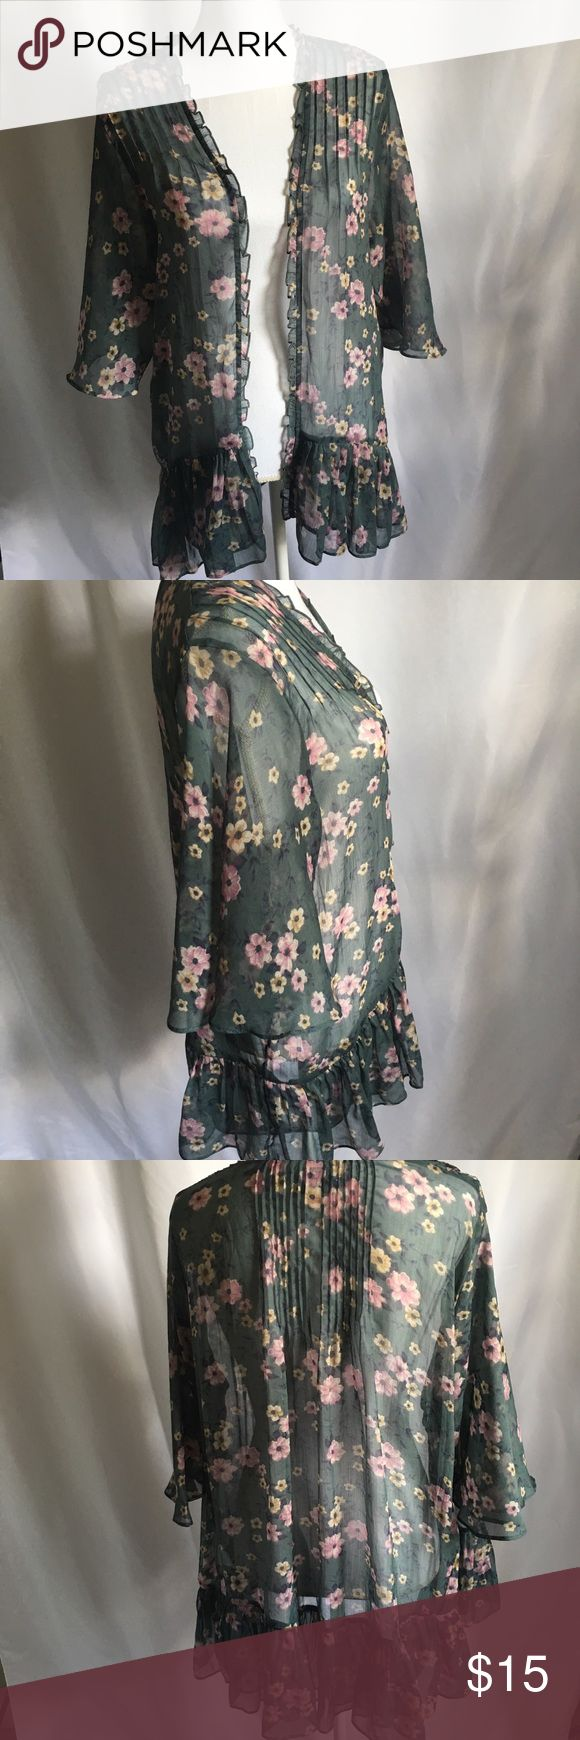 American Eagle Kimono Green Sheer Shaw Color: Green Floral   Size: XS/S   Measurements (approximate)   Armpit to armpit (laying flat): 26 in.   Length: 30 in.   Sleeve length: 17 in.    Condition: Great; No stains, holes, and little to no signs of wear American Eagle Outfitters Sweaters